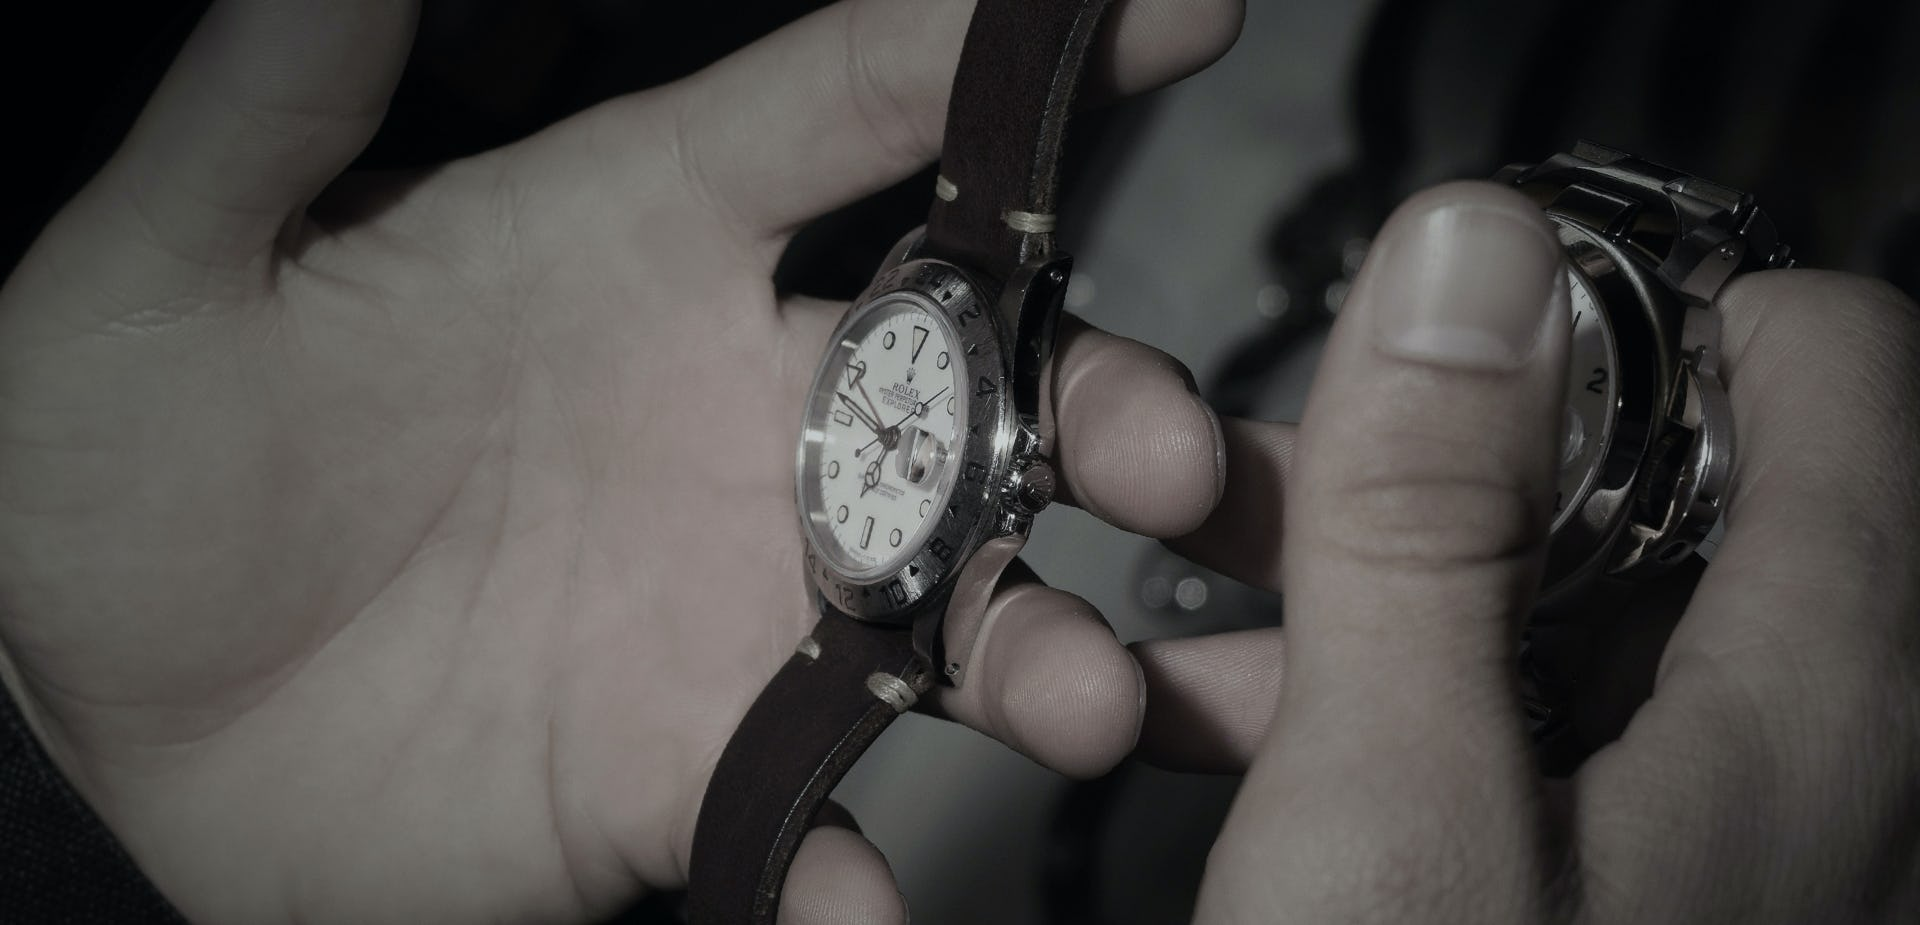 Should I Consider A Luxury Watch Trade?